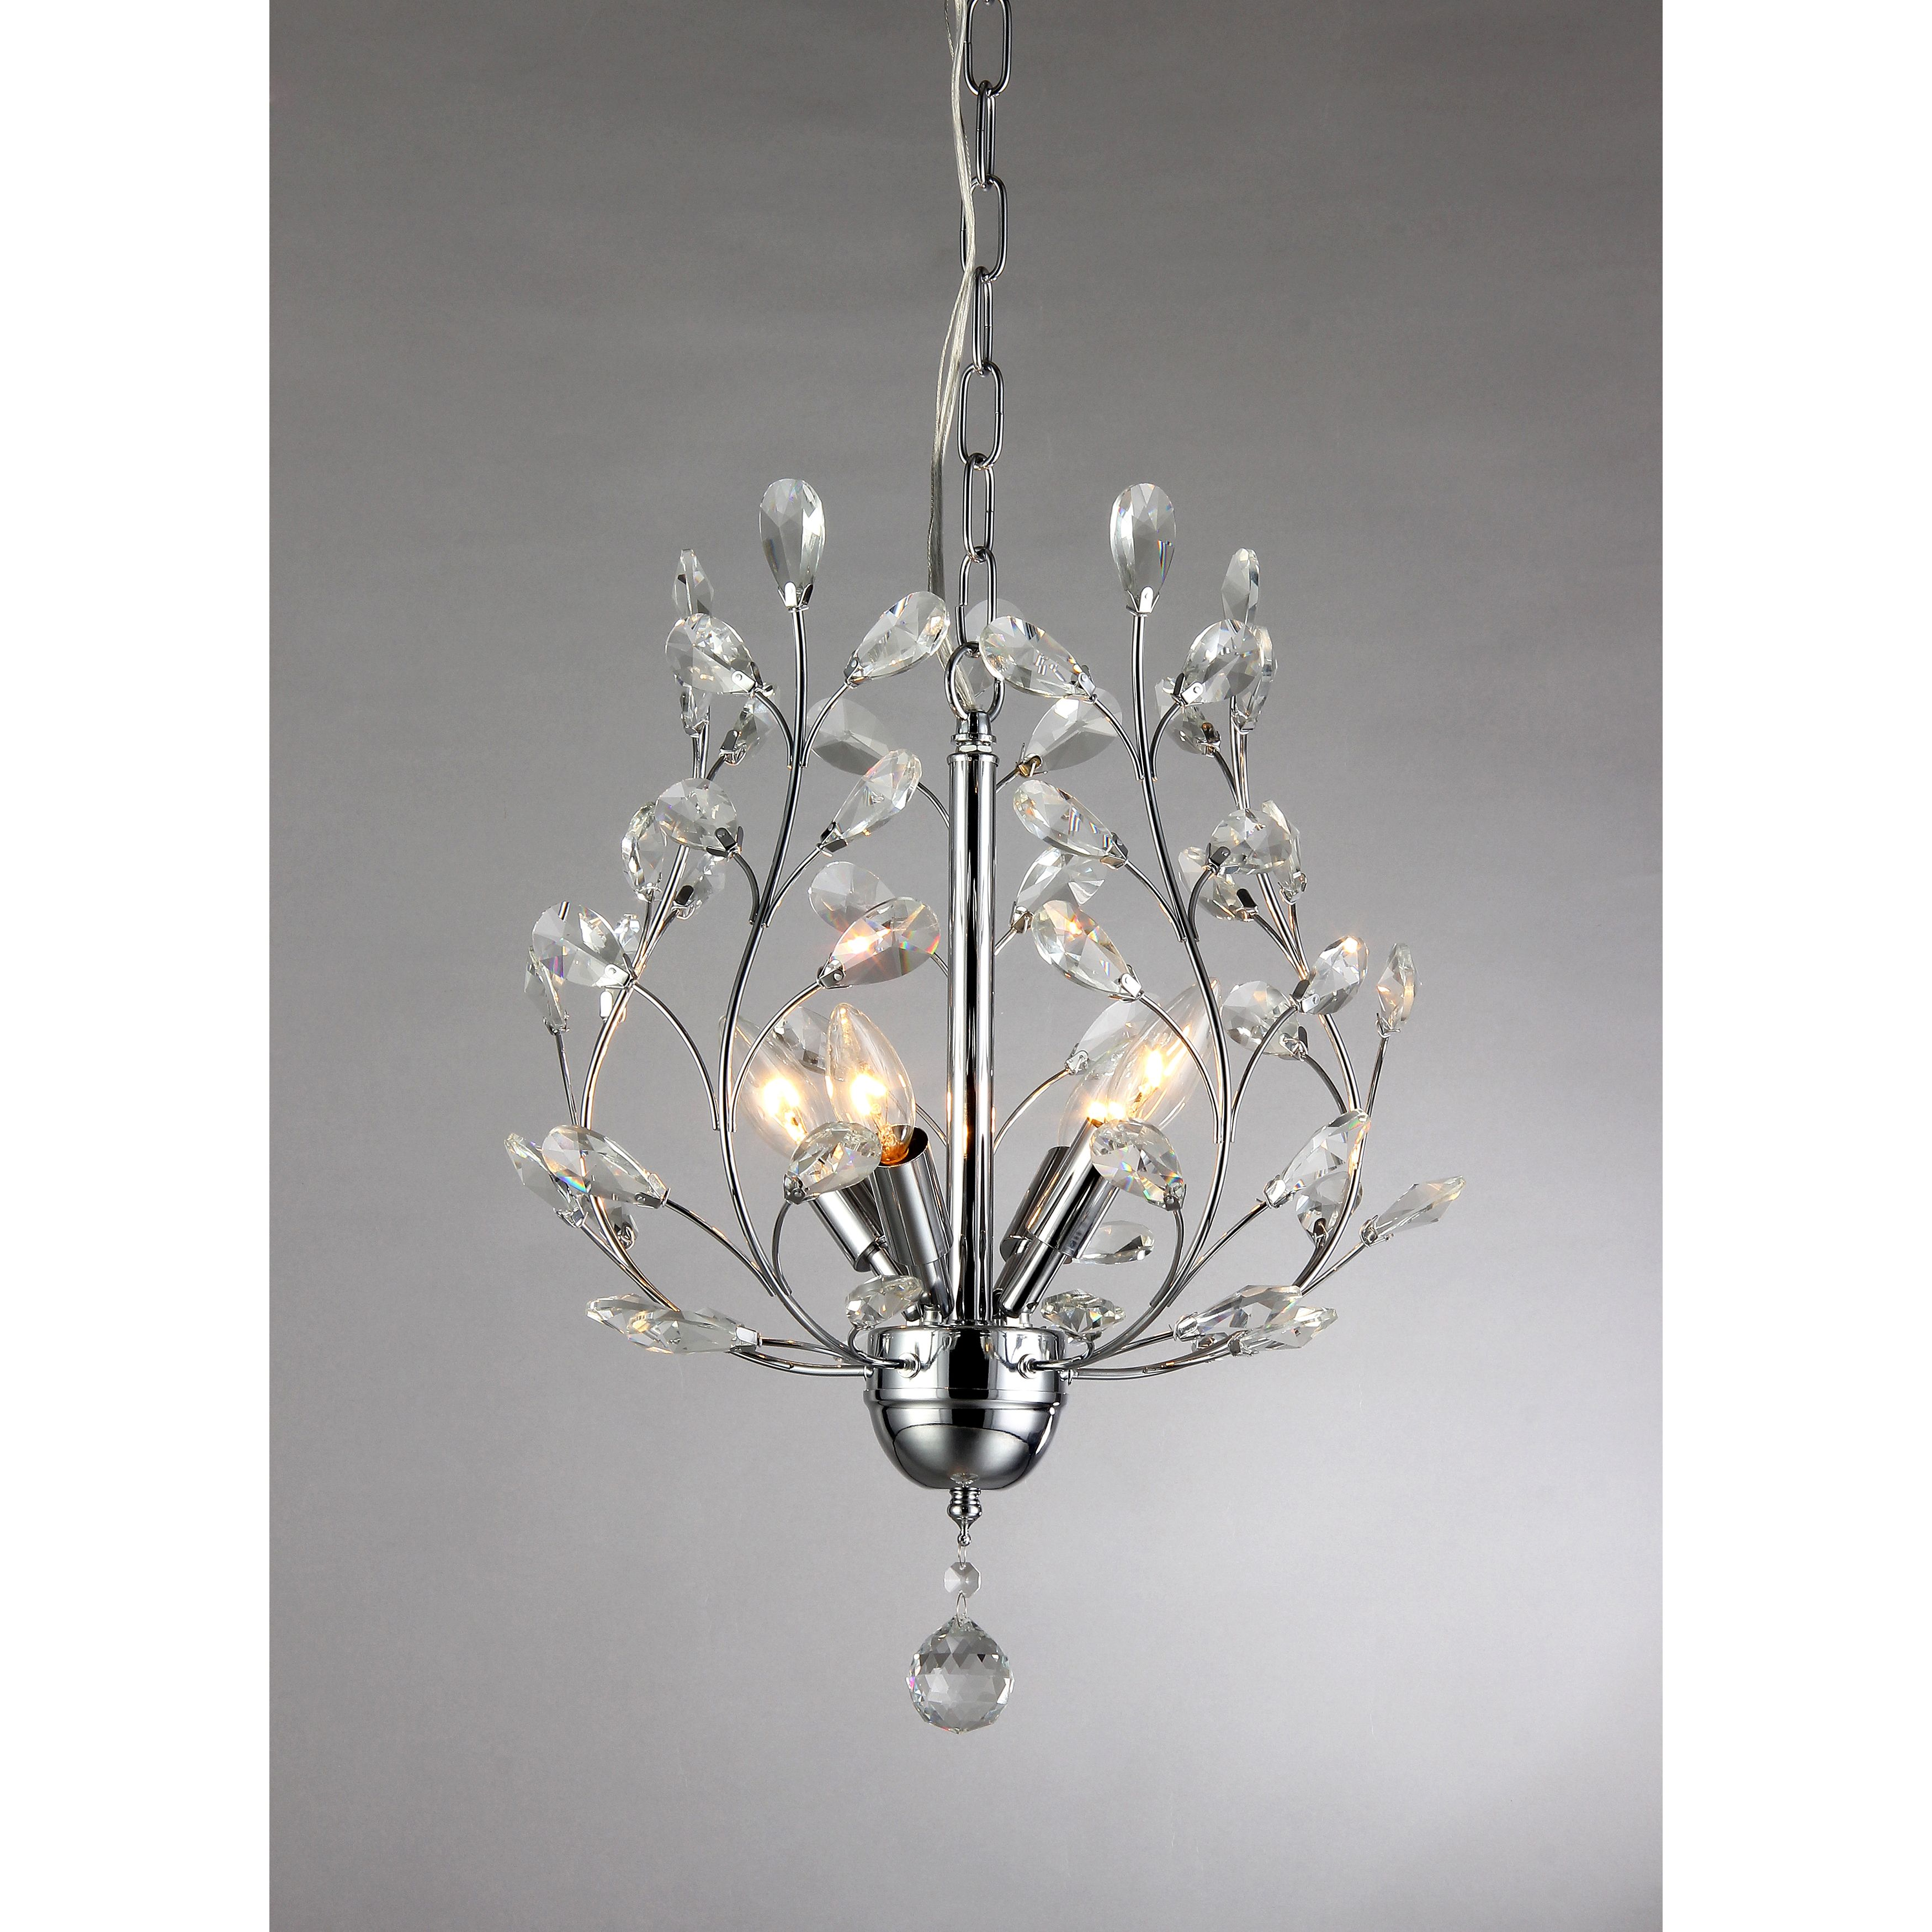 This is chrome finished chandelier has leaf like crystals to